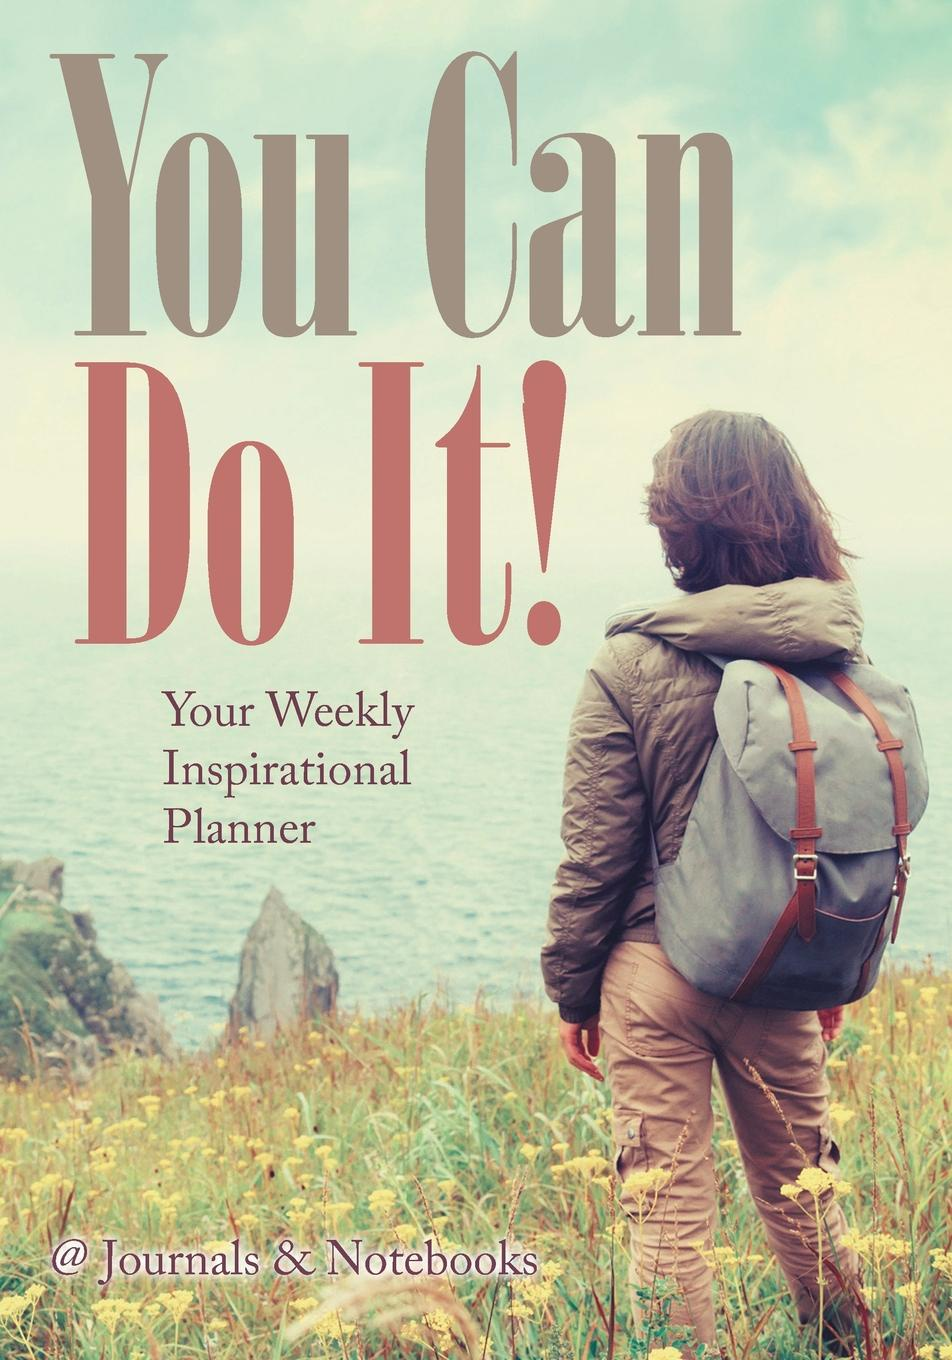 @Journals Notebooks You Can Do It! Your Weekly Inspirational Planner larry f wolf policing peace what america can do now to avoid future tragedies